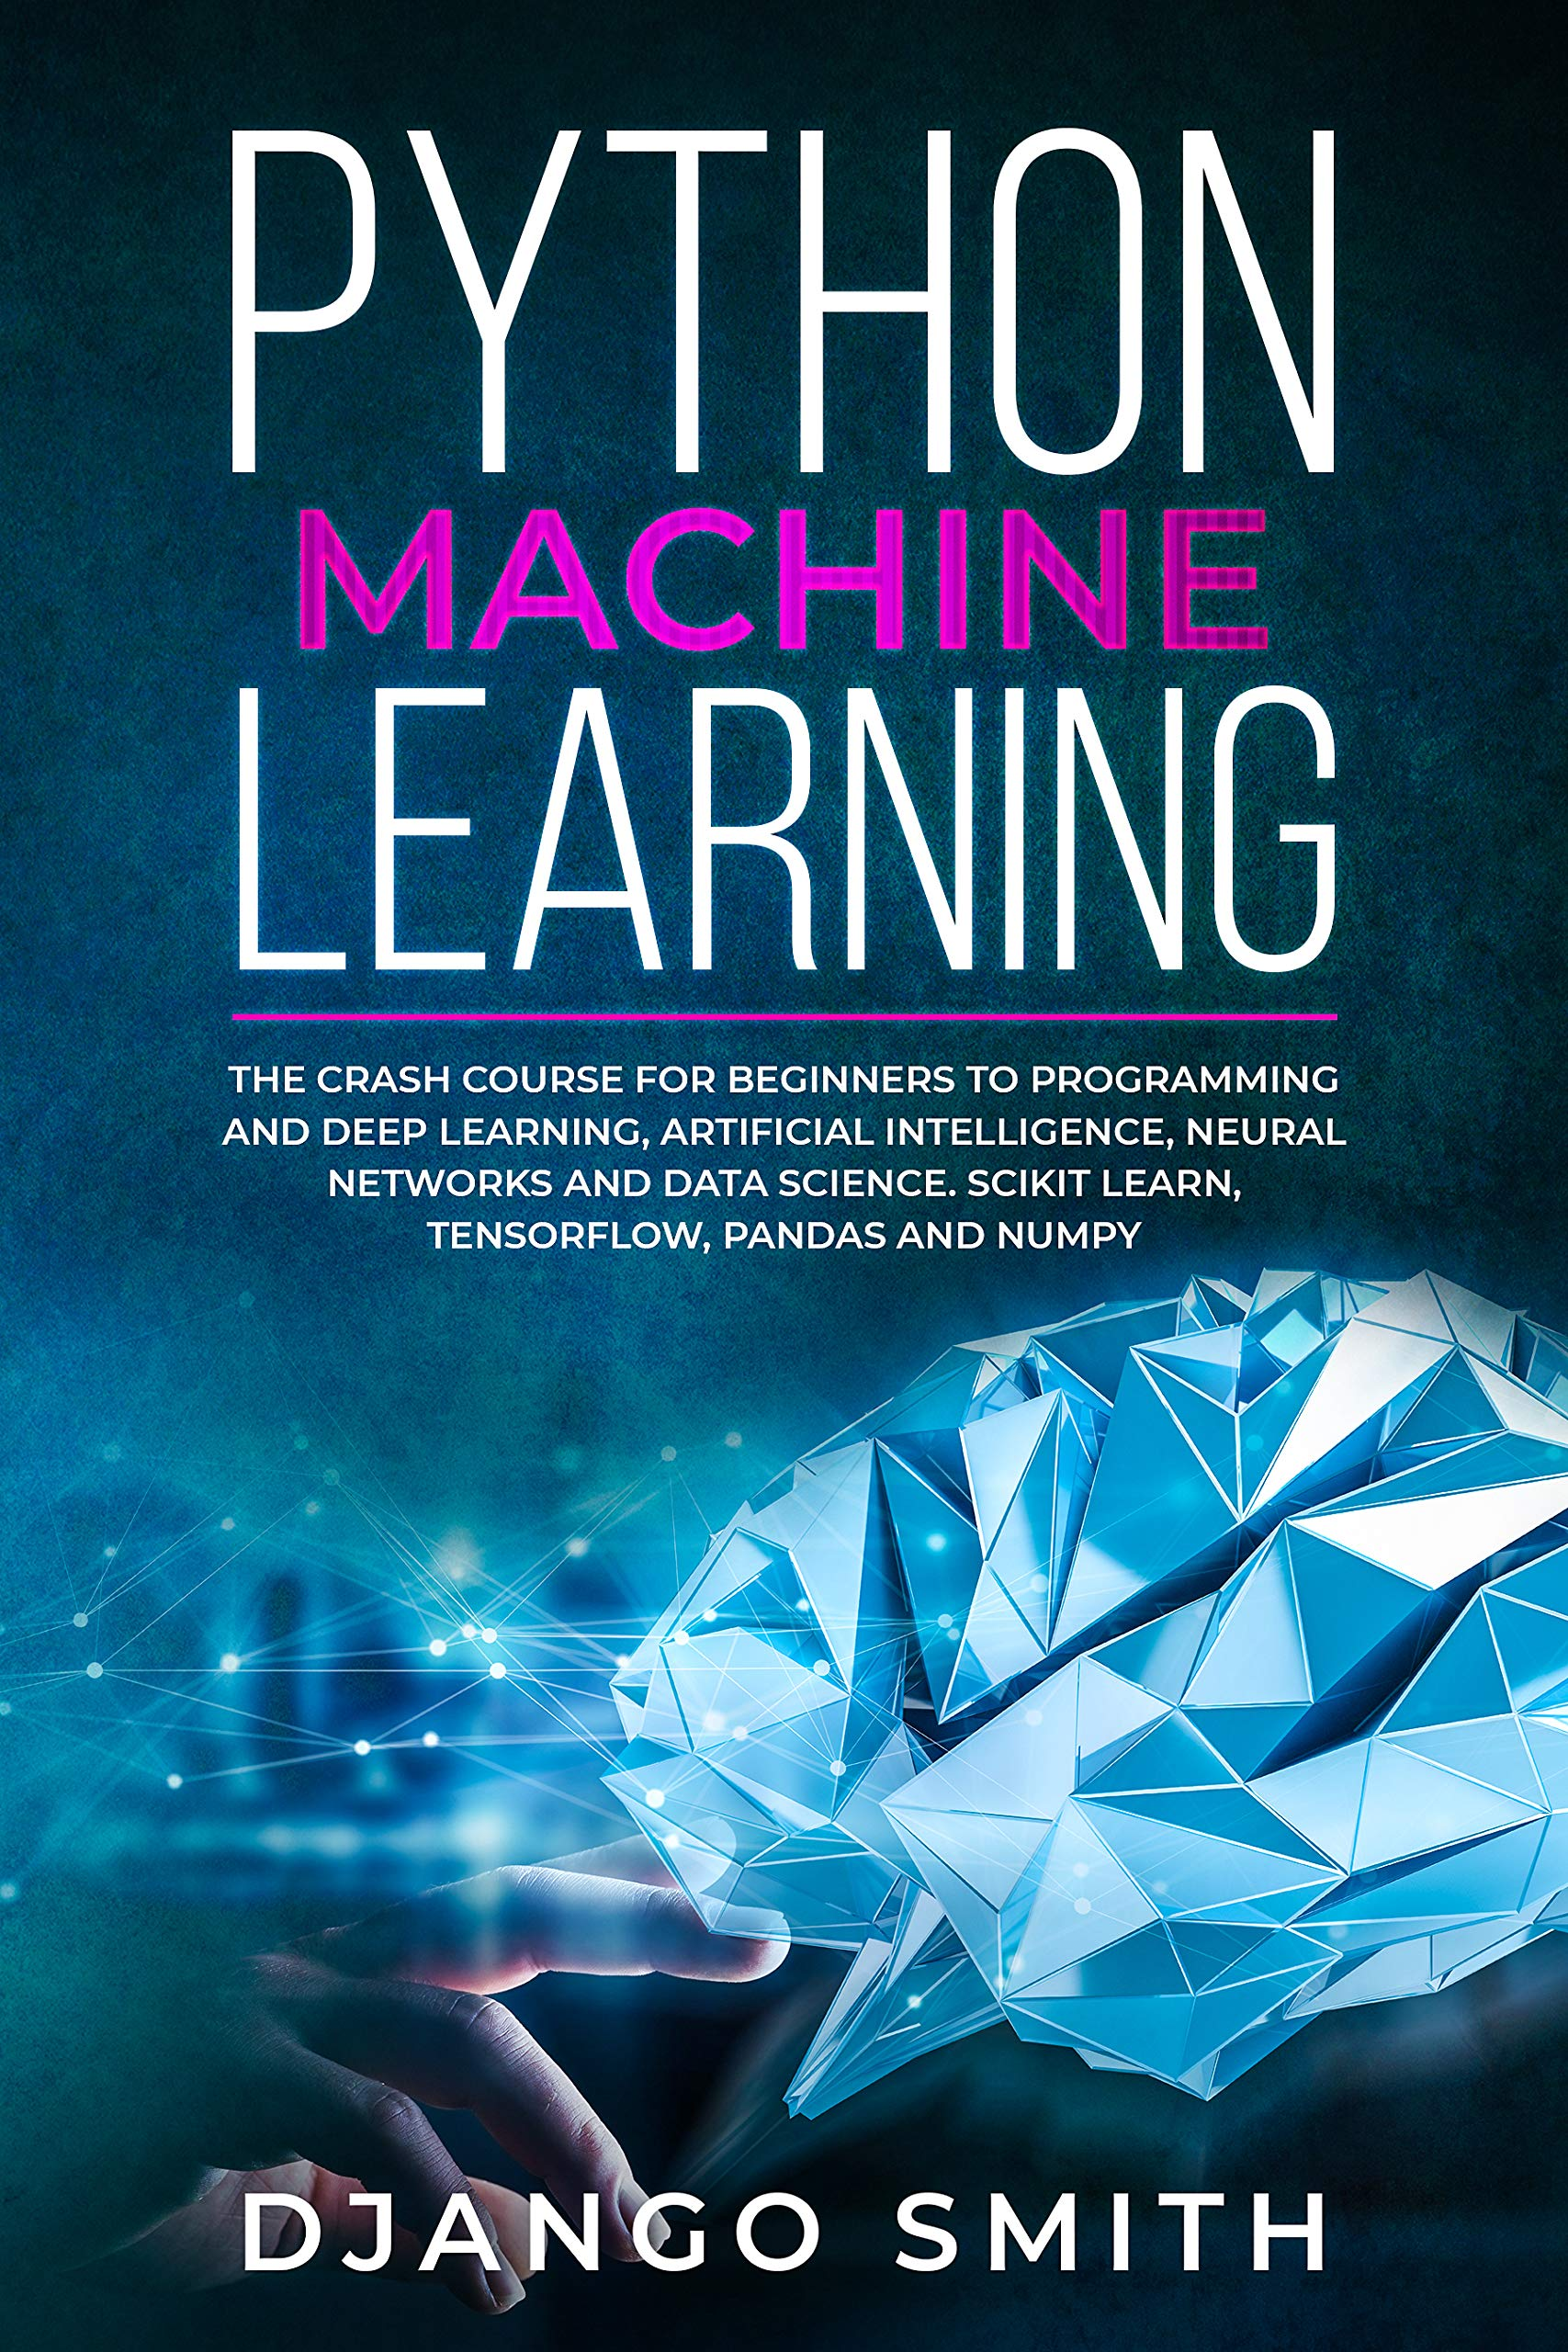 Python Machine Learning  The Crash Course For Beginners To Programming And Deep Learning Artificial Intelligence Neural Networks And Data Science. Scikit ... Pandas And Numpy.  English Edition